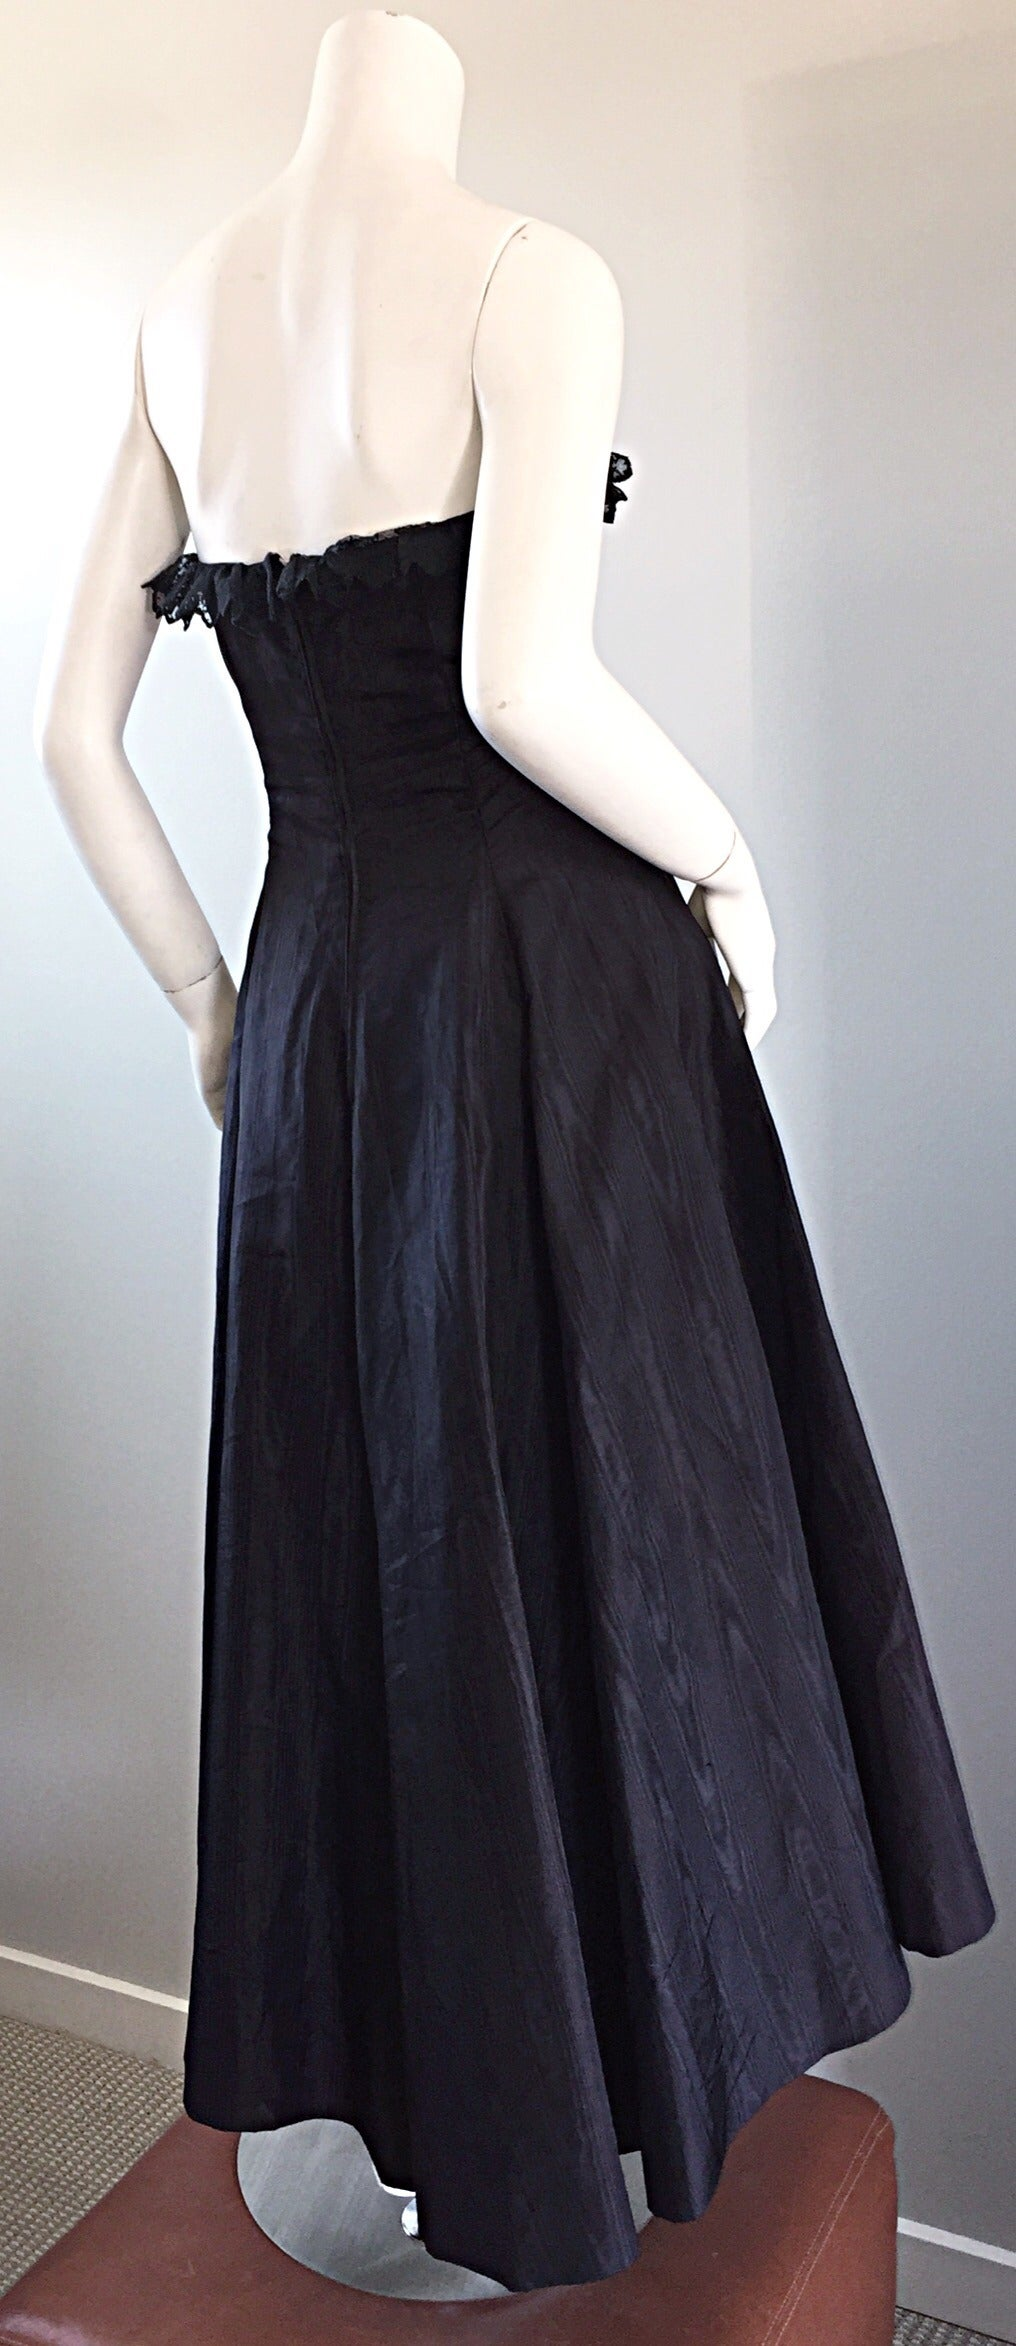 "1950s 50s Black Silk Taffeta + Lace Strapless "" New Look "" Vintage Dress 4"